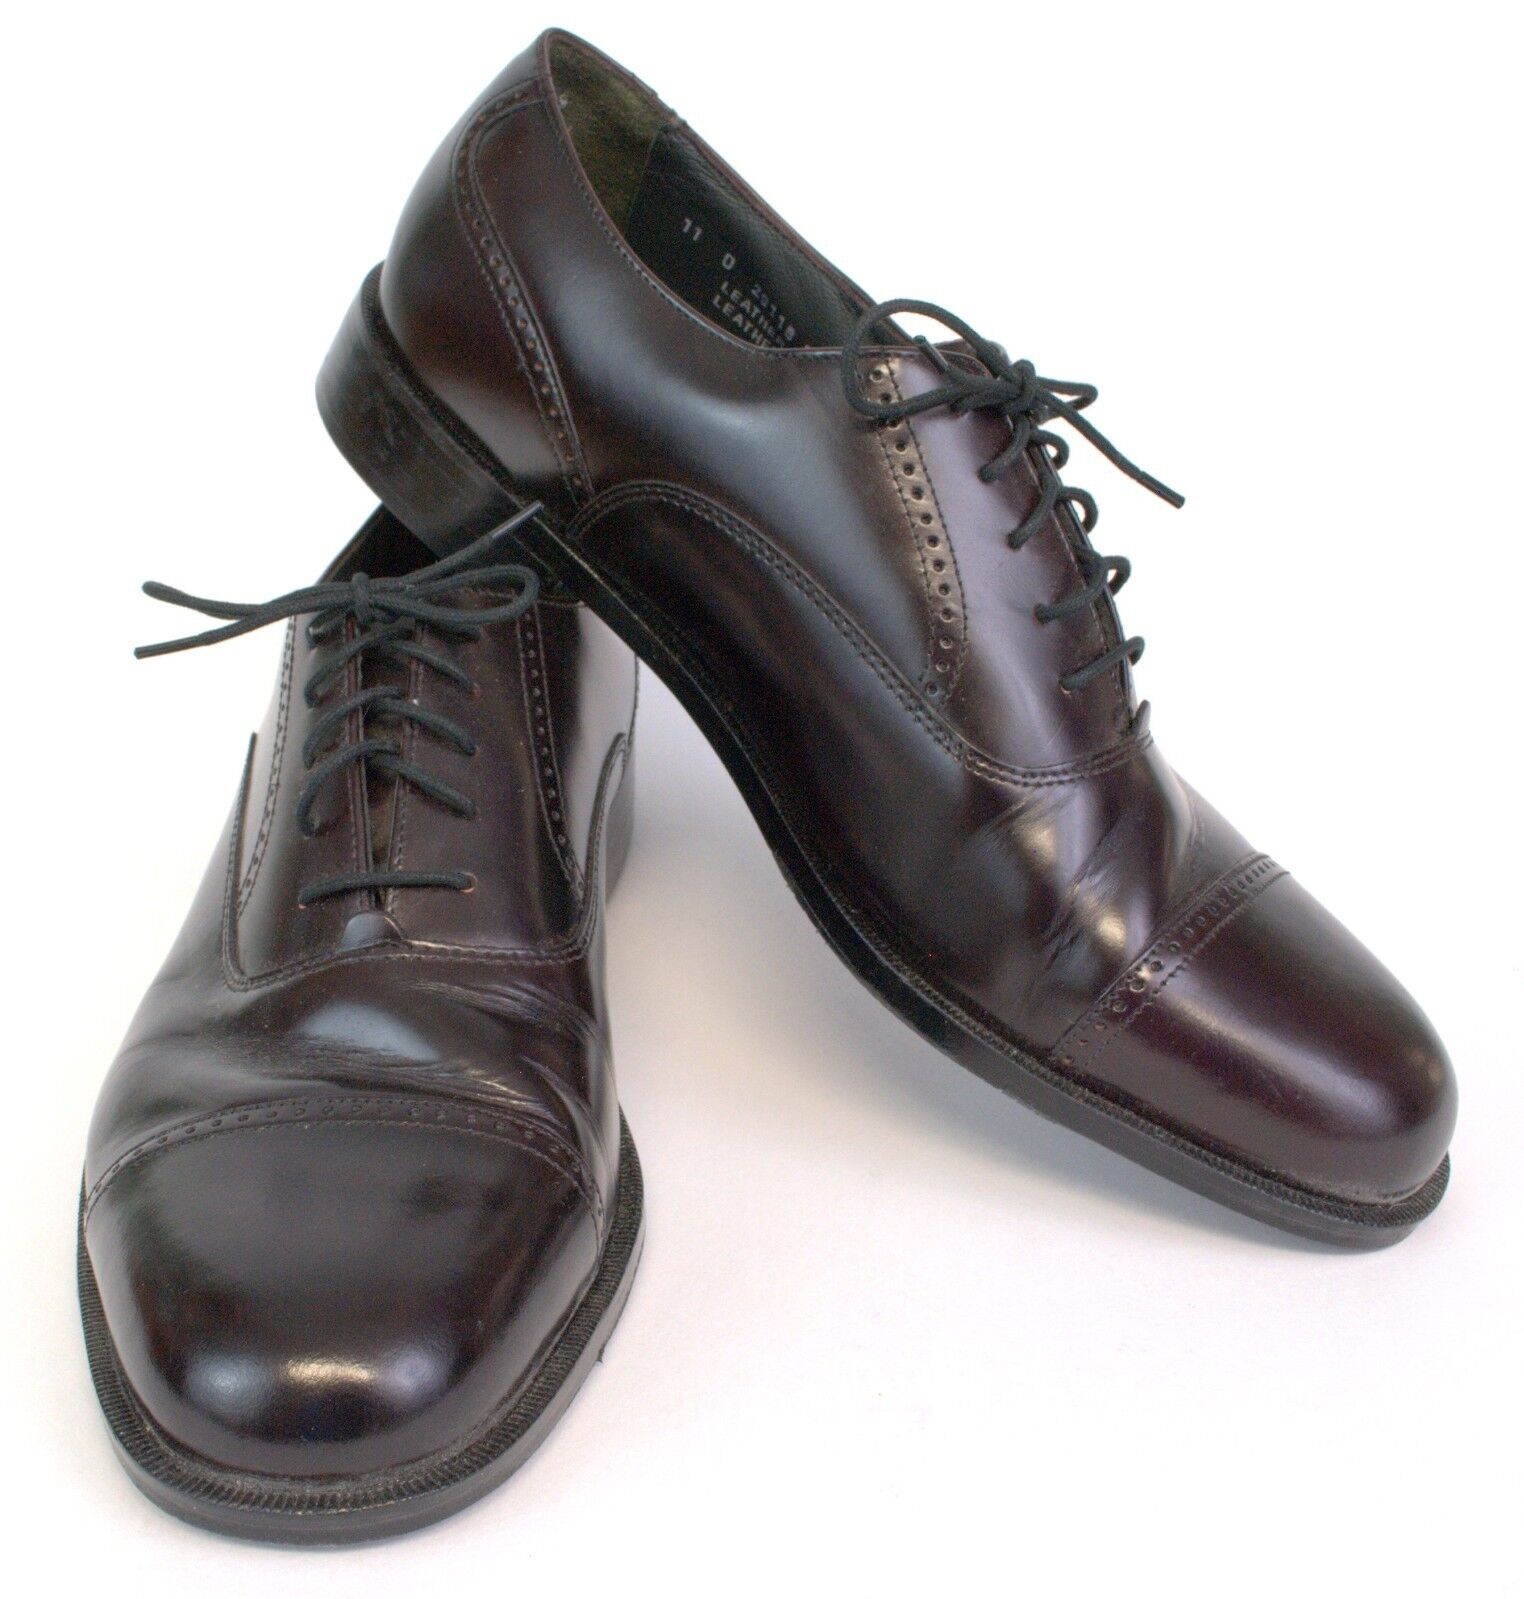 Bostonian Classics Dark Brown Cap Toe Mans shoes 11 medium Great Looking Lace Up